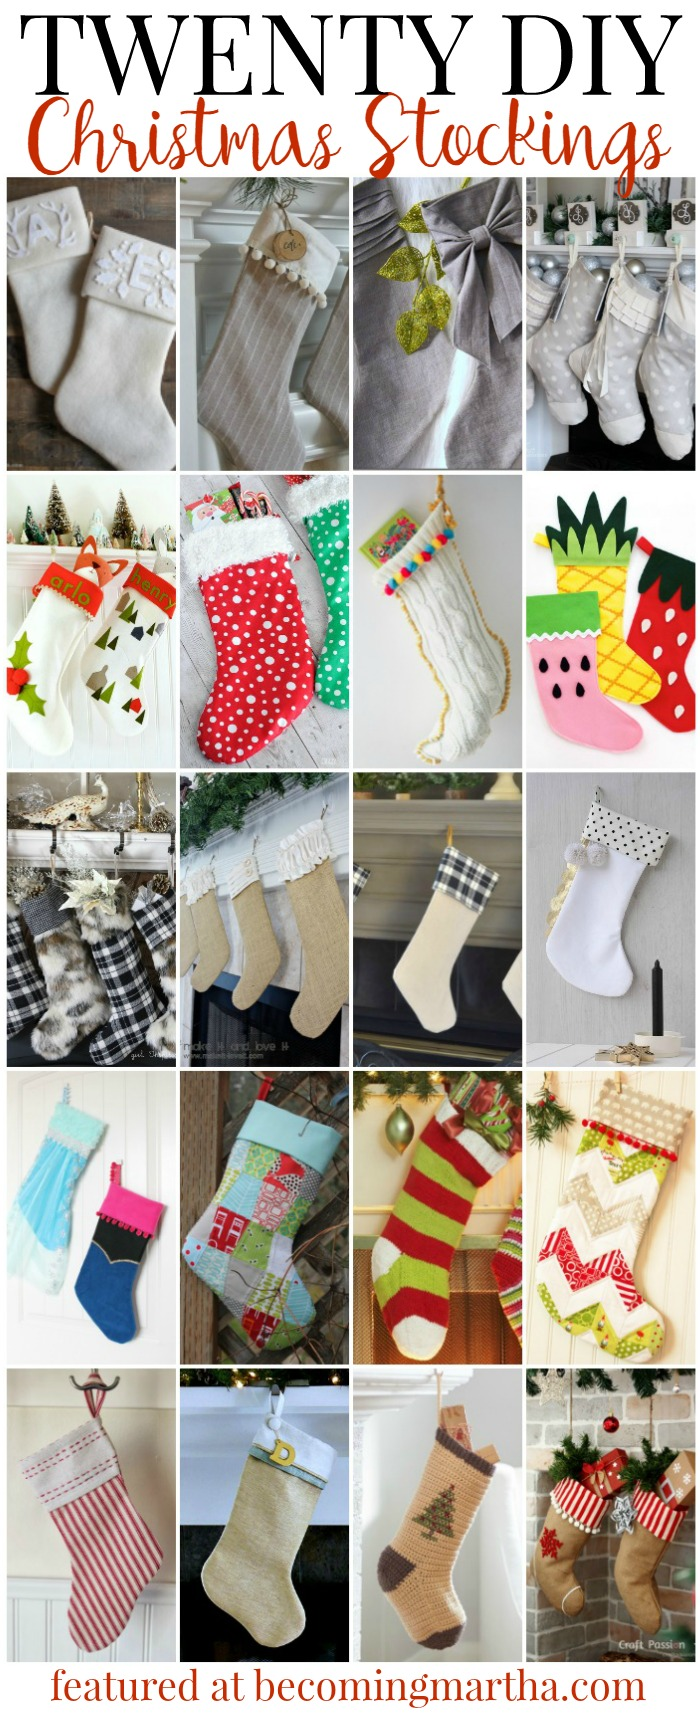 Looking for great Christmas stocking patterns that you can use to DIY your own this year? Here are 20 of the greatest ideas to get you started!